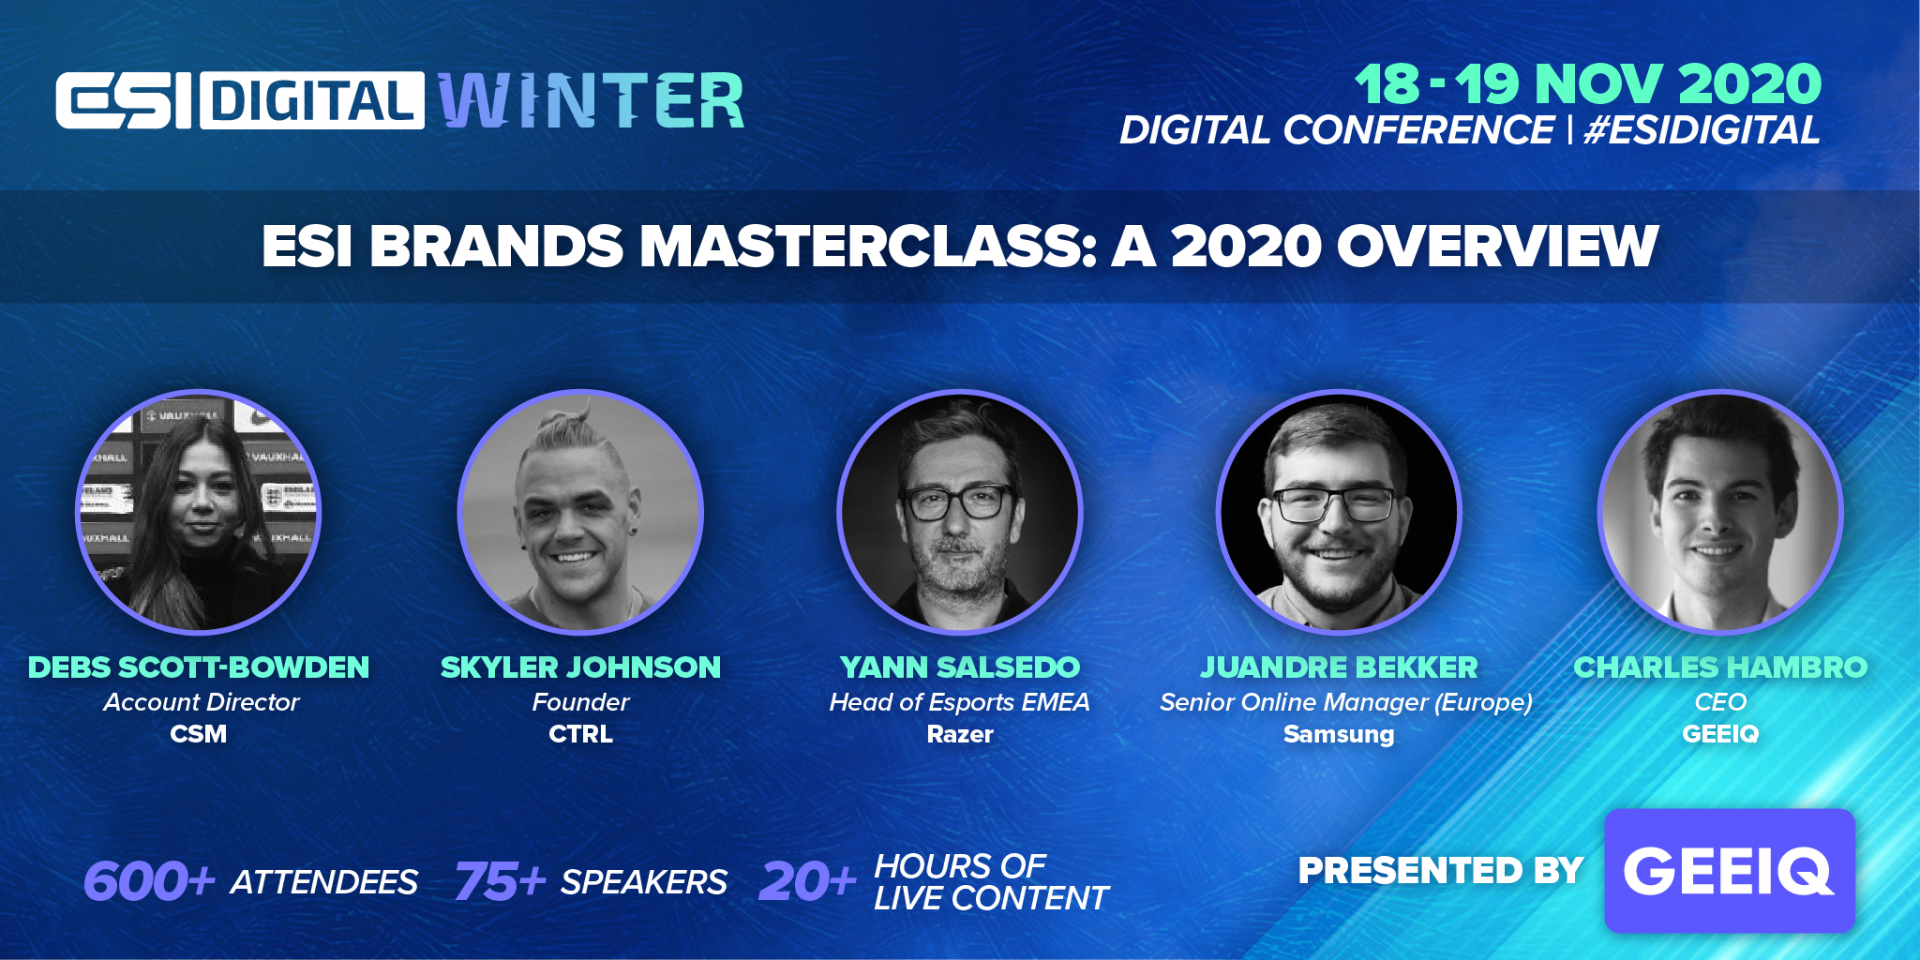 ESI Digital Winter 2020 Overview, presented by Geeiq